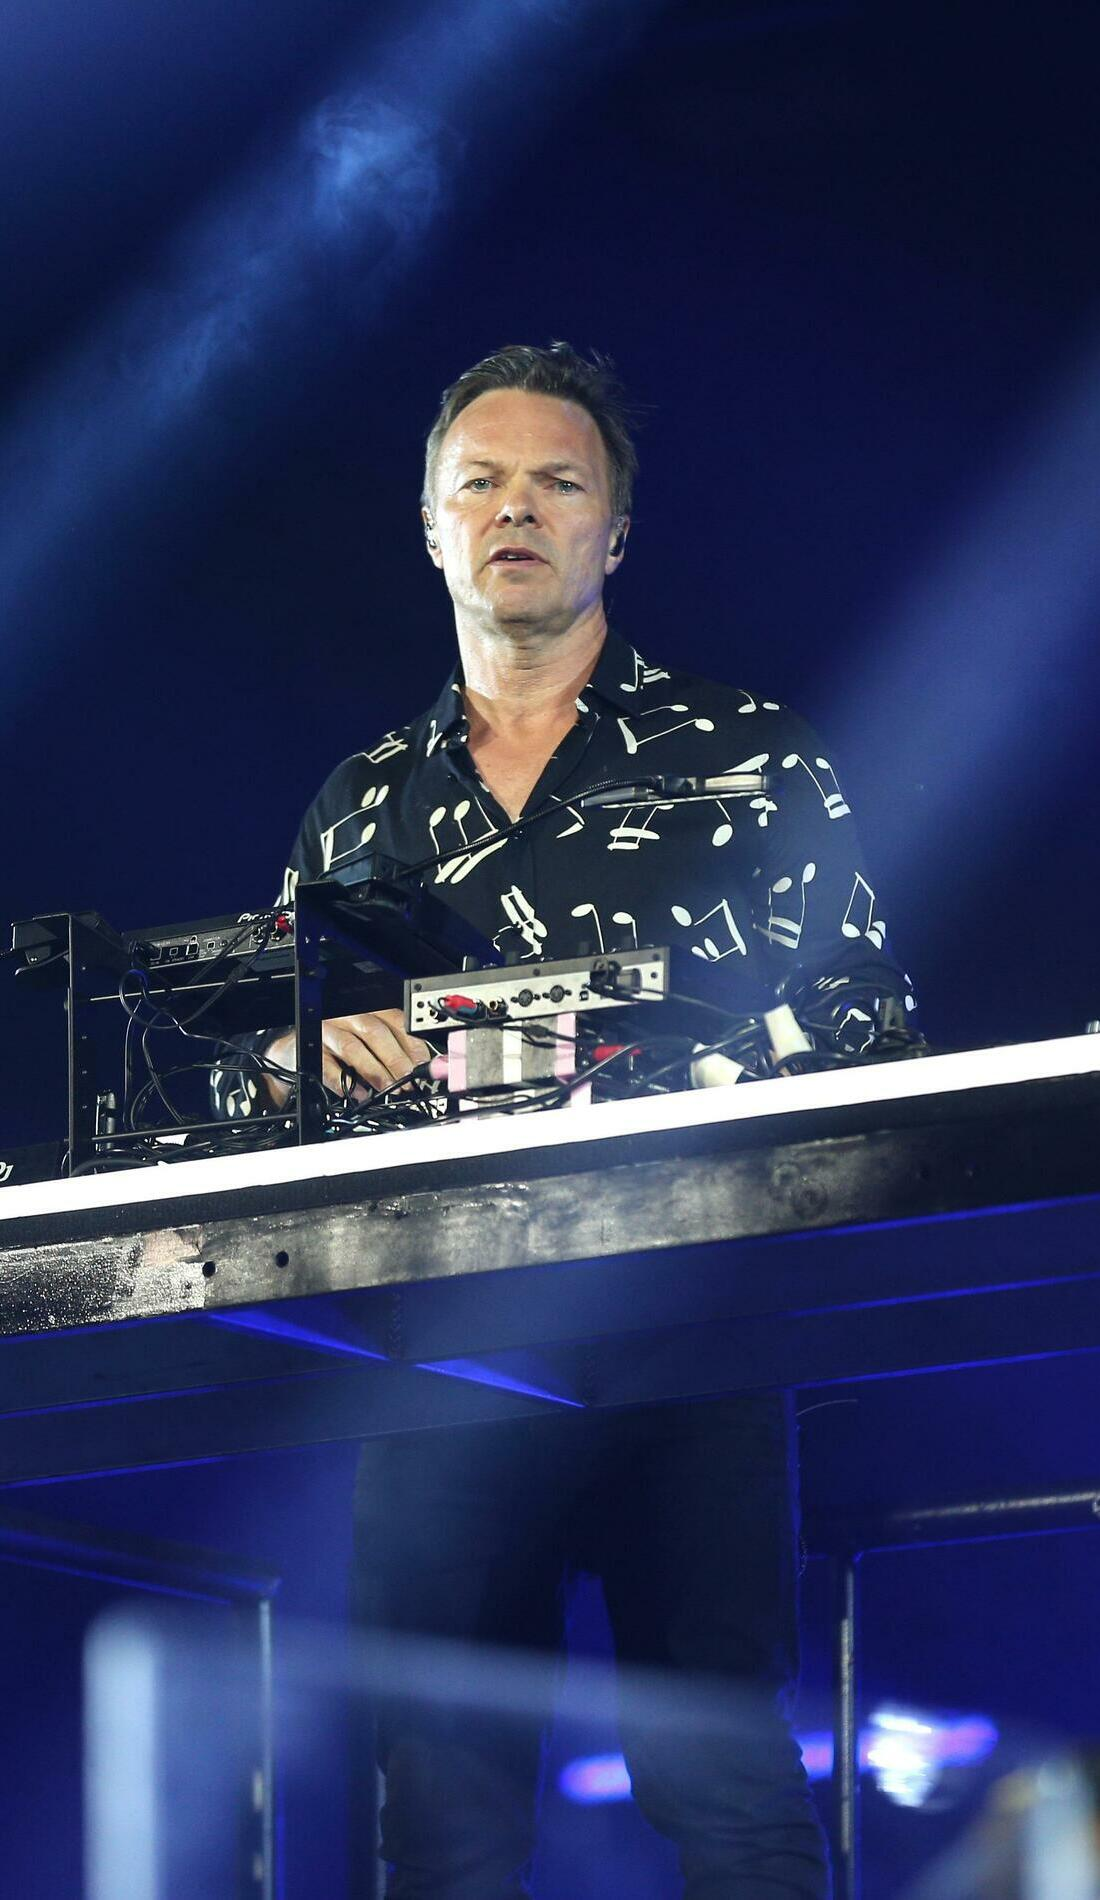 A Pete Tong live event